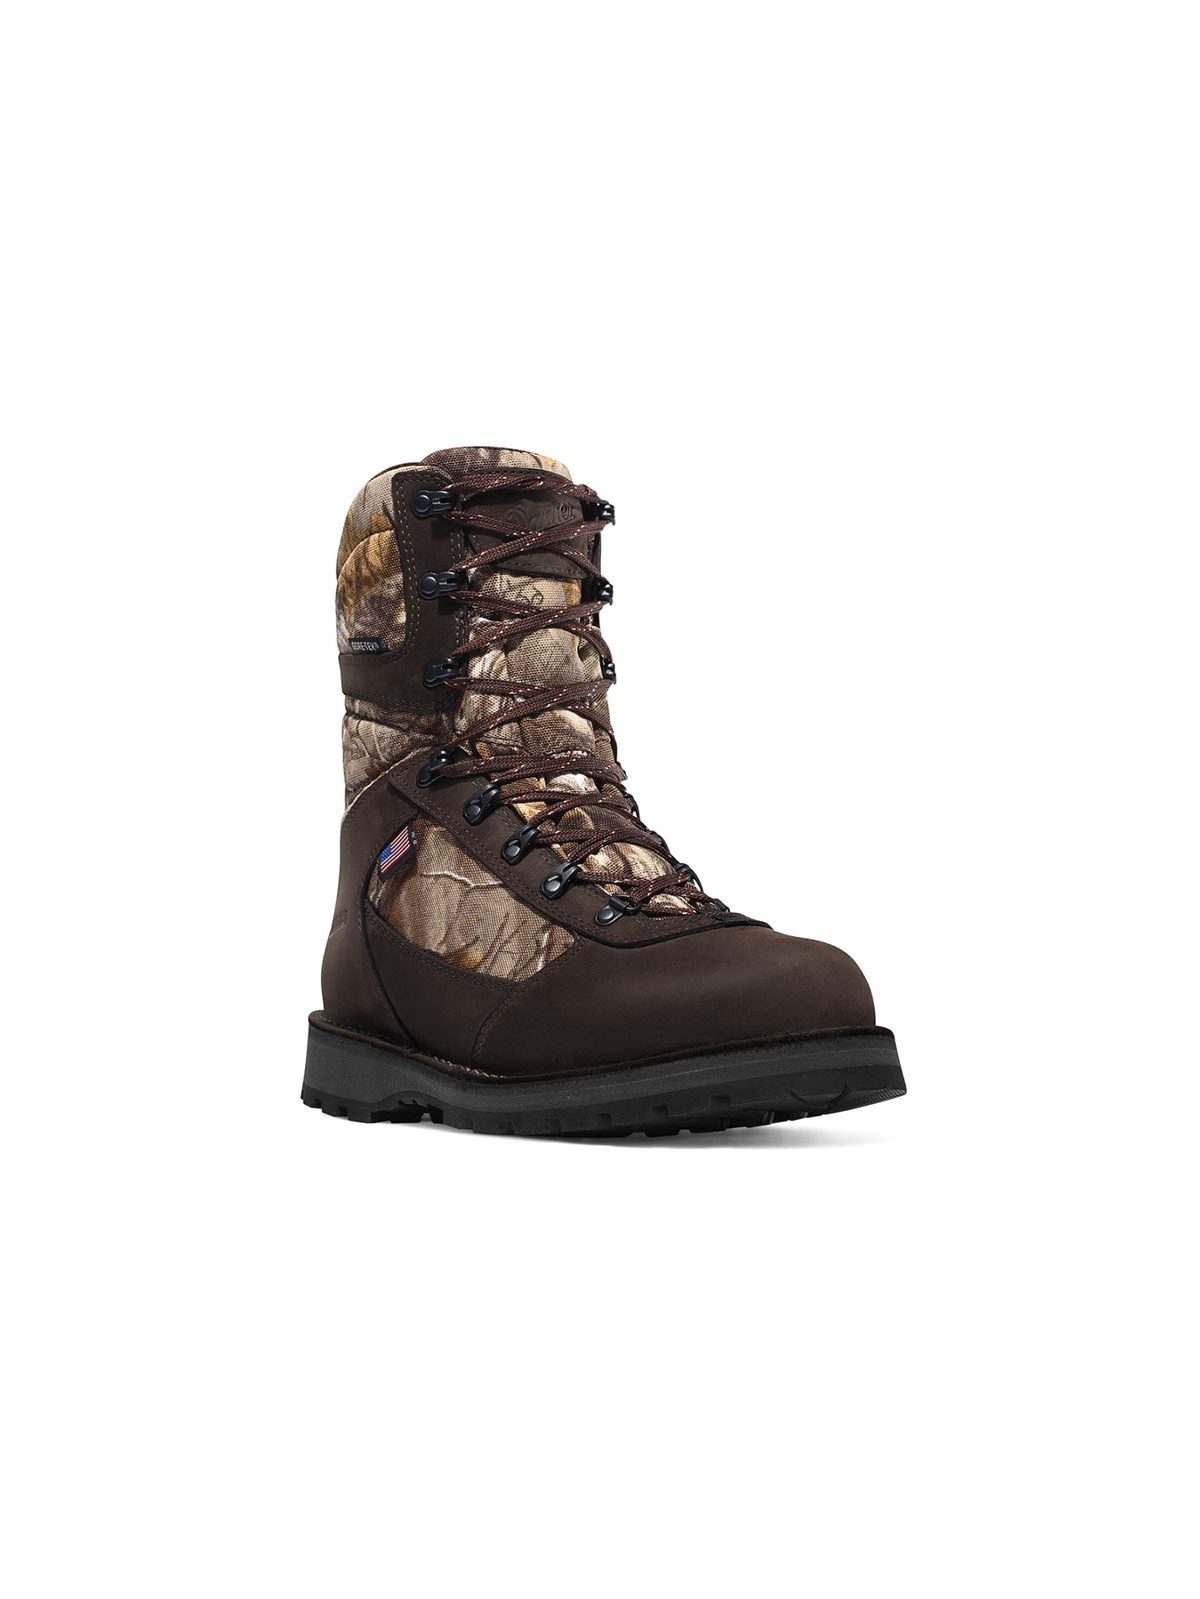 Danner Mens Made In the USA East Ridge RTX Insulated Hunting Boots 62117 by Danner